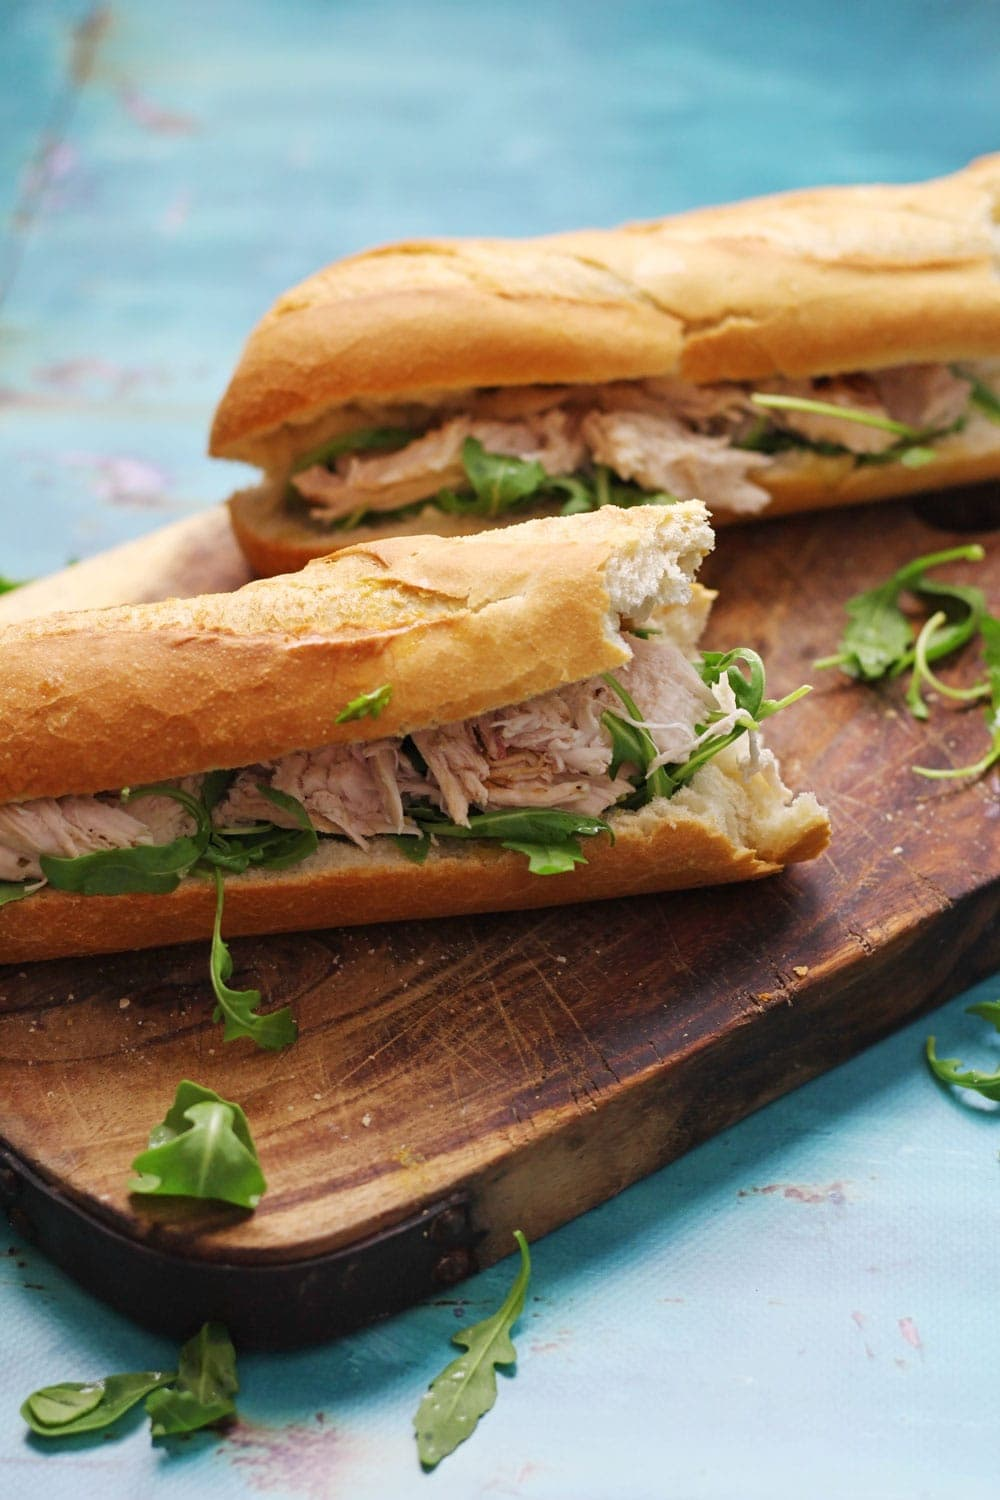 This lime & mint roast chicken sandwich recipe is a delicious weekend treat! Serve drizzled with garlic butter and topped with peppery rocket leaves.